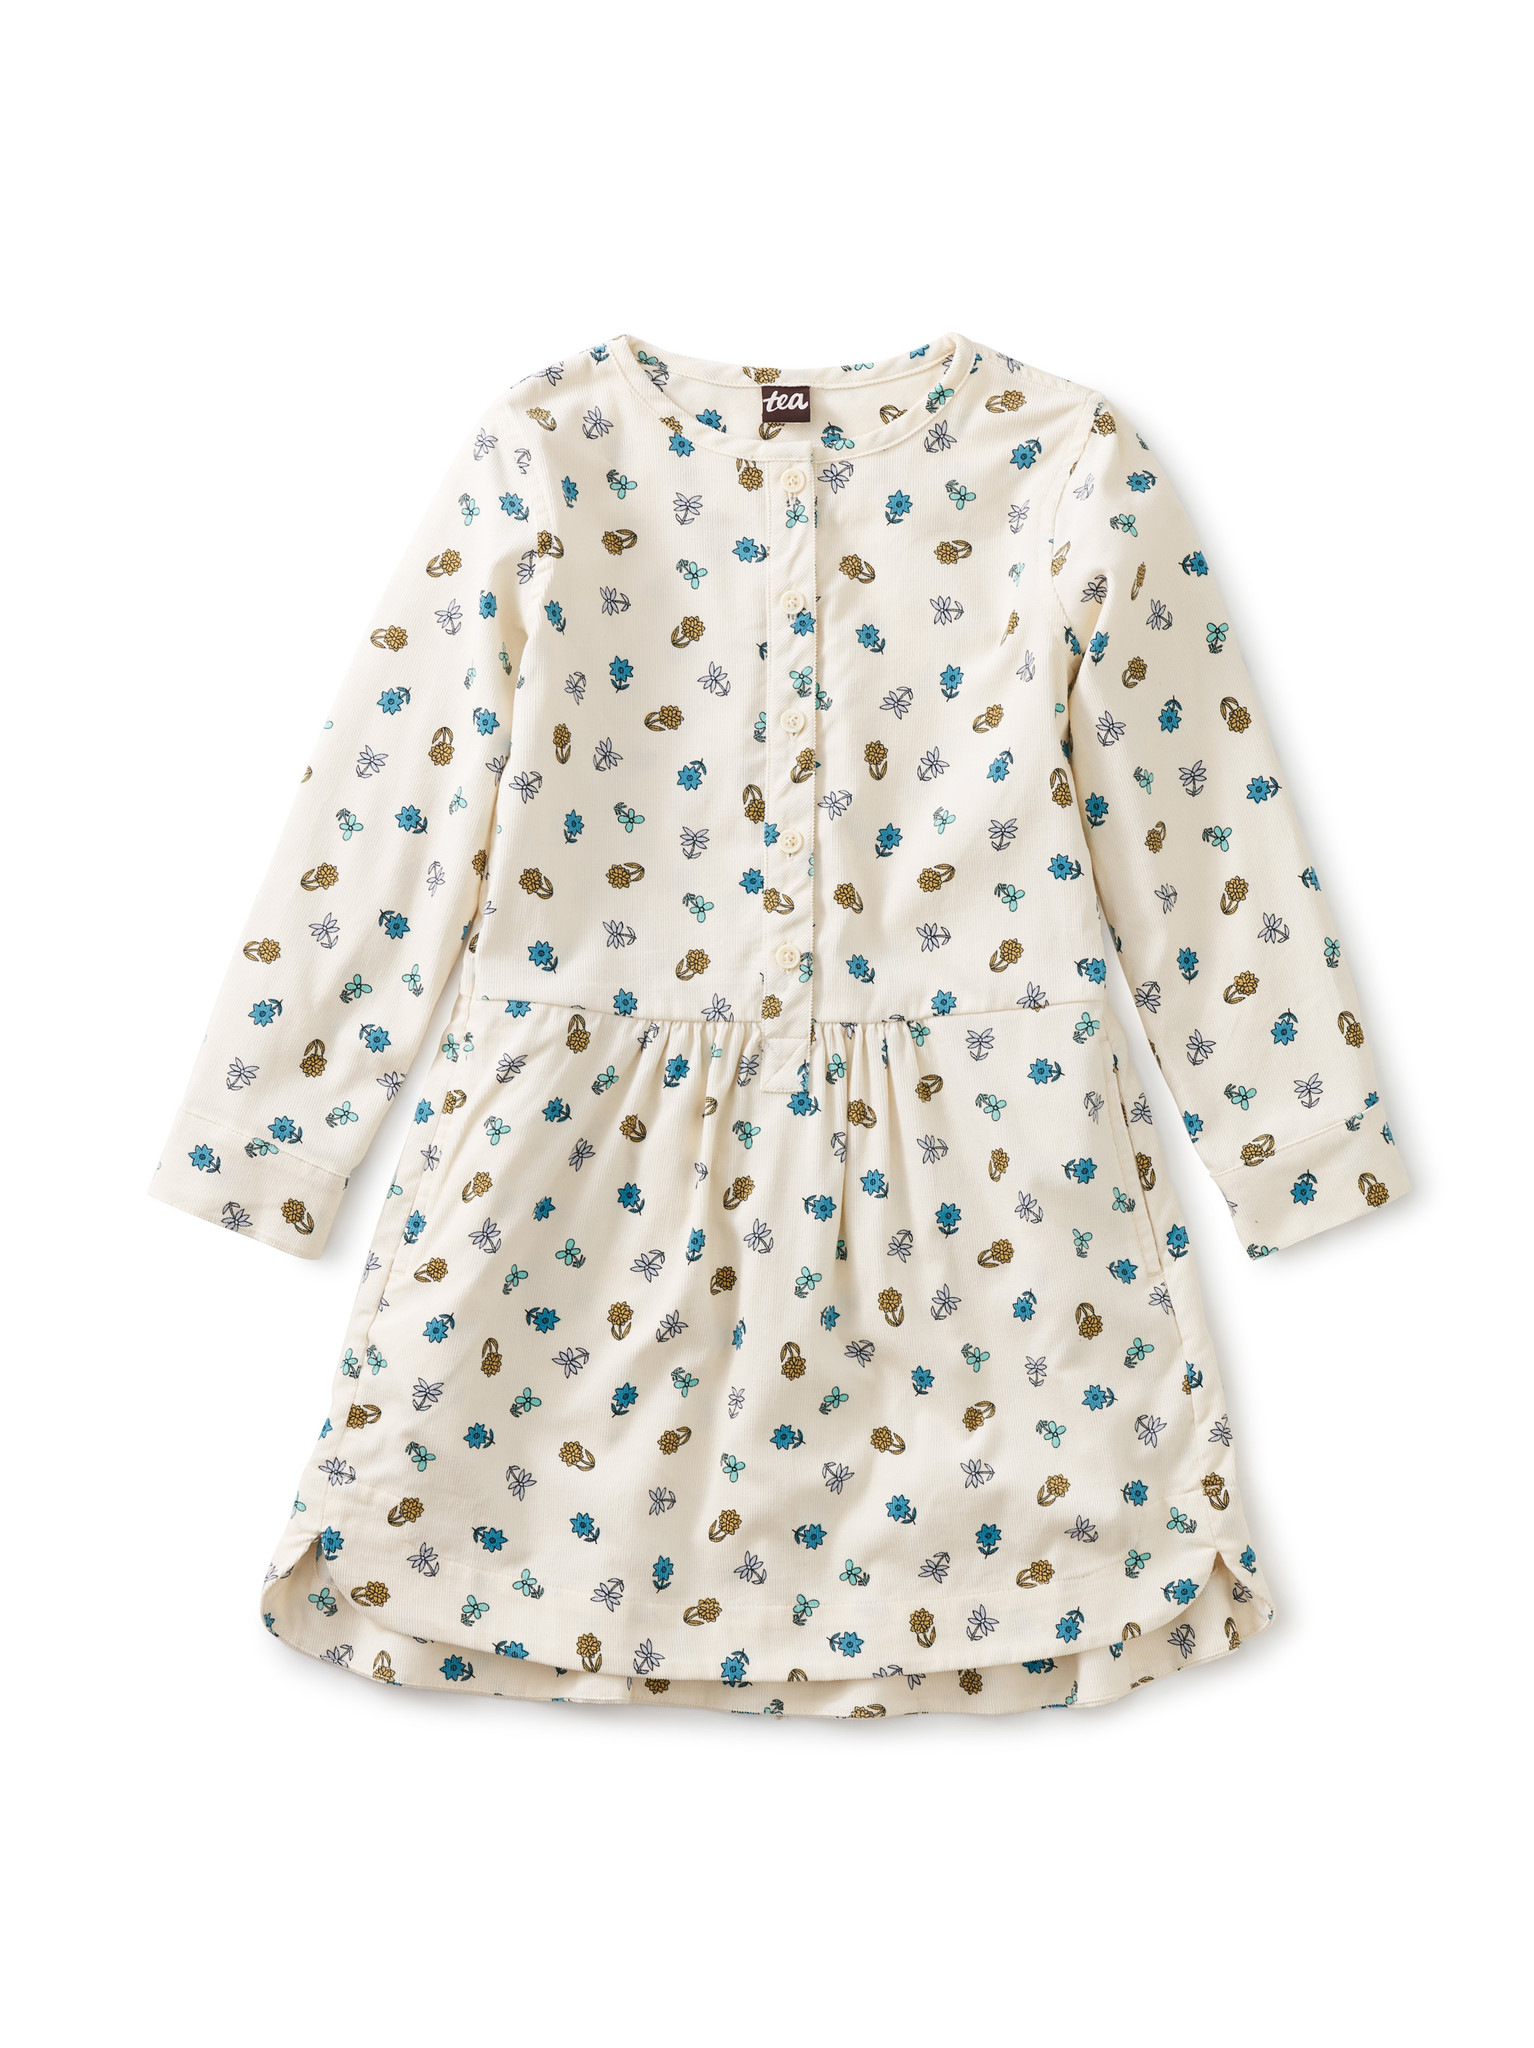 Tea Collection White Starry Shirtdress